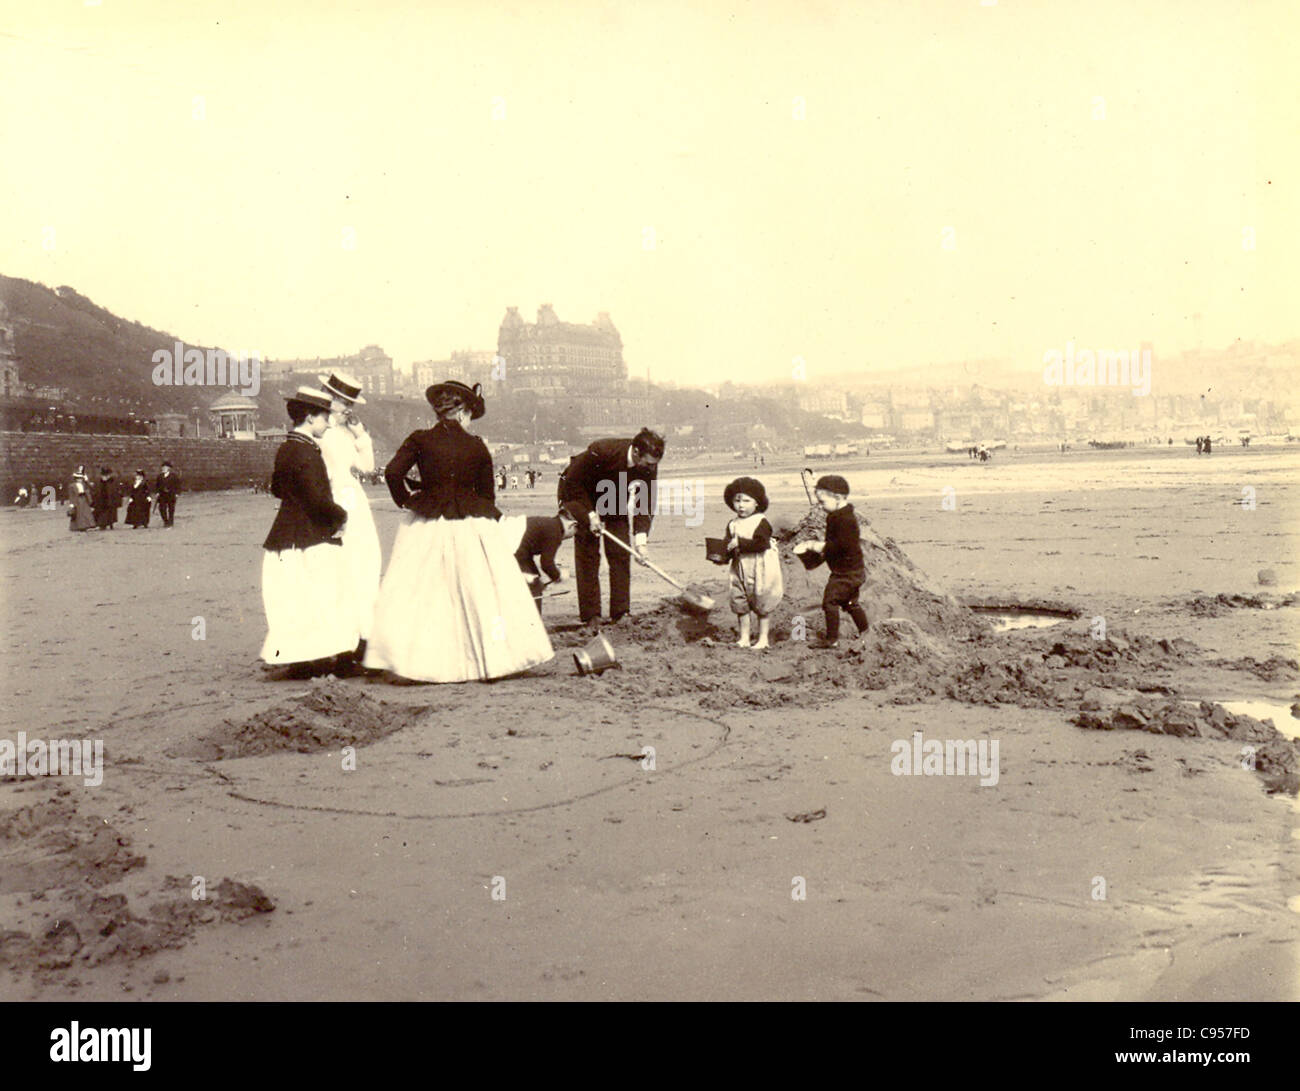 Scavare il sandcastles on Scarborough sands Immagini Stock